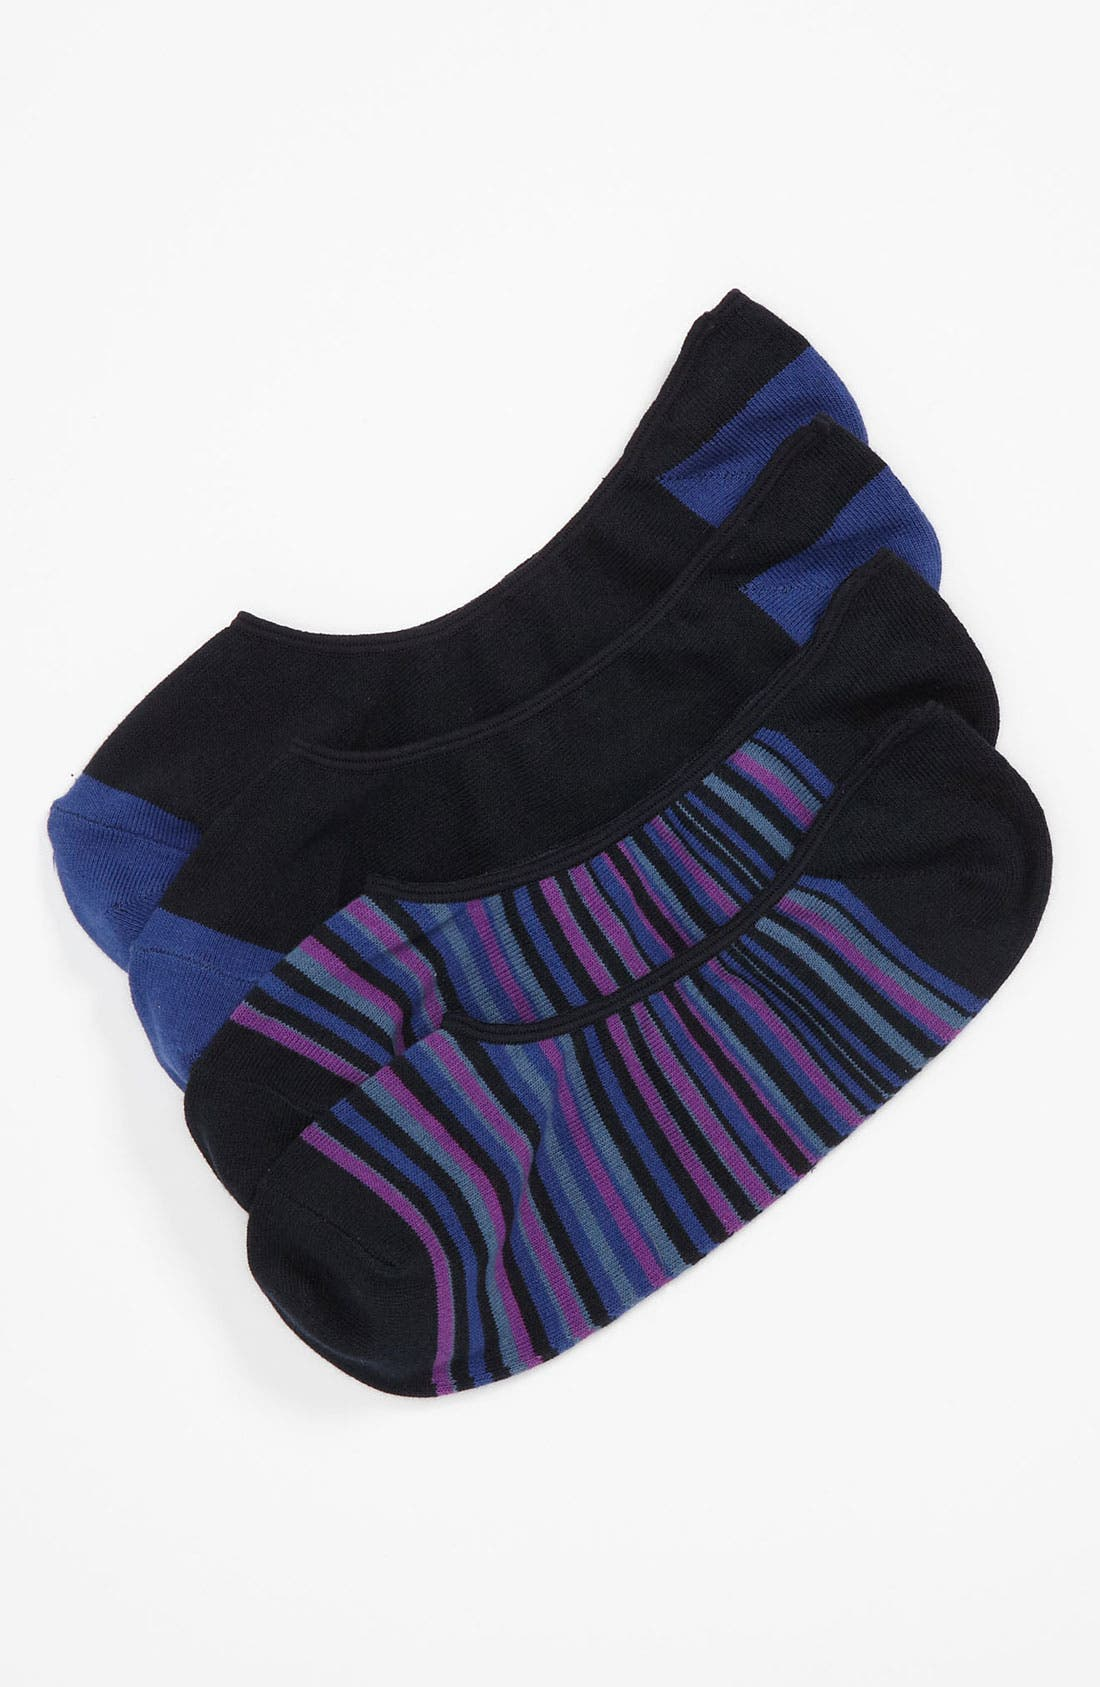 Alternate Image 1 Selected - Cole Haan 'Town Stripe' Liner Socks